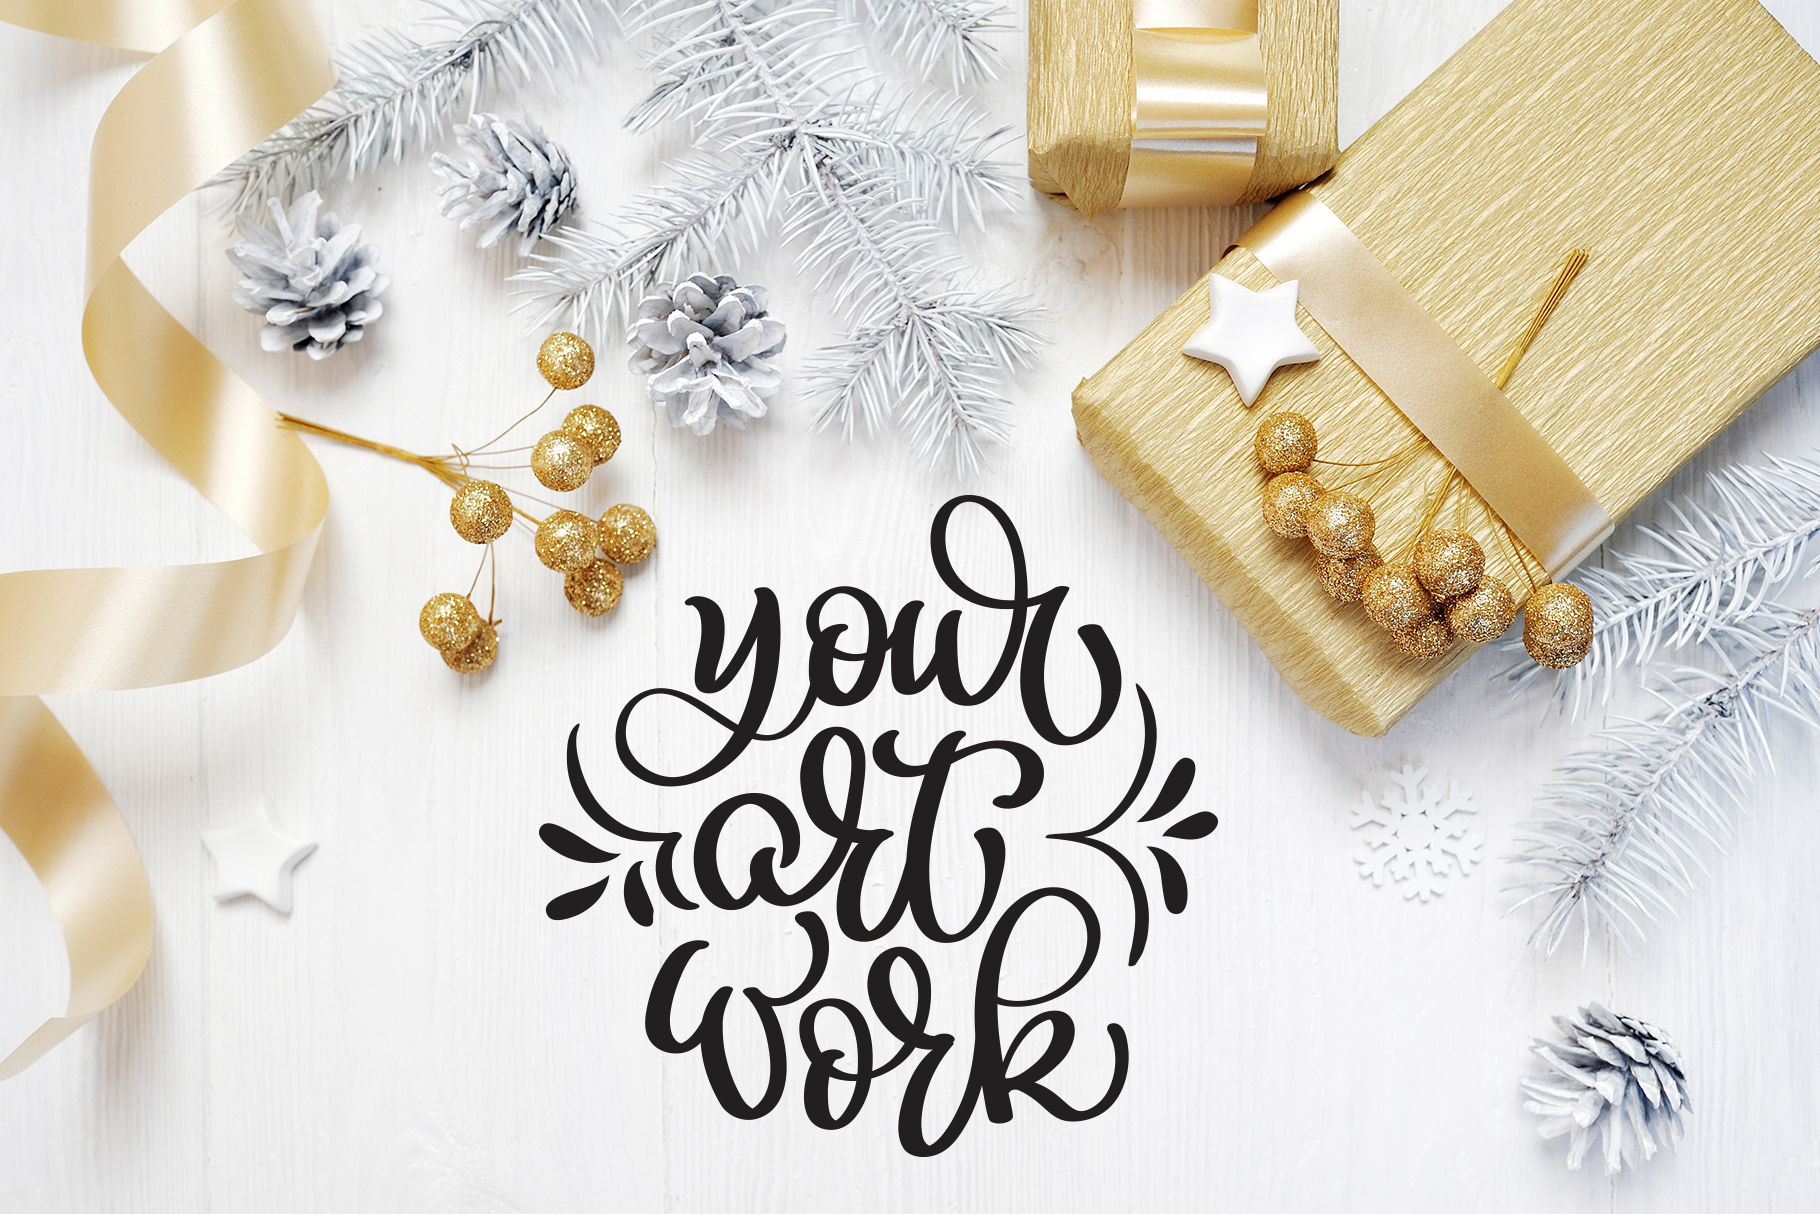 Christmas Photos Set Graphic Holidays By Happy Letters - Image 5